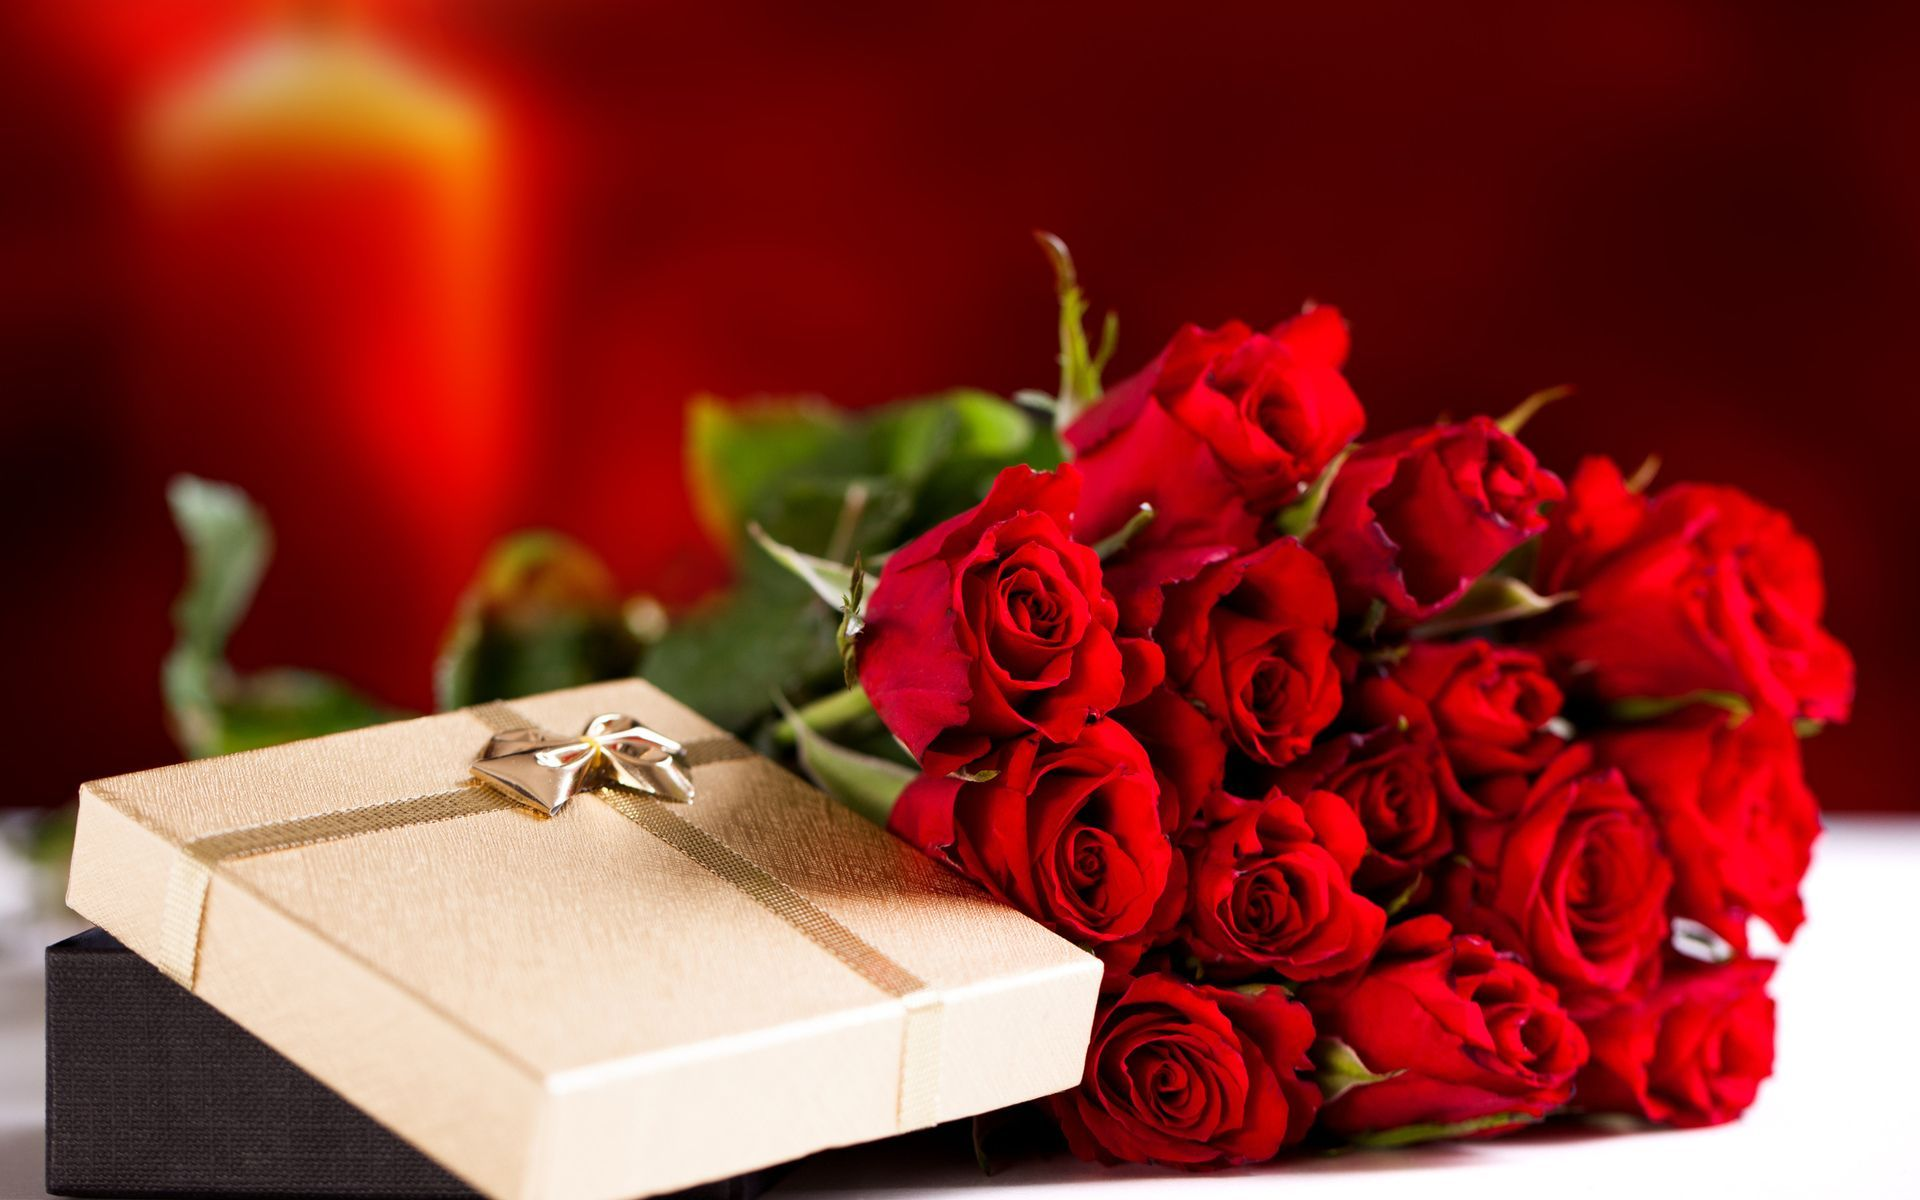 DIY Gift Ideas – Great for Valentine